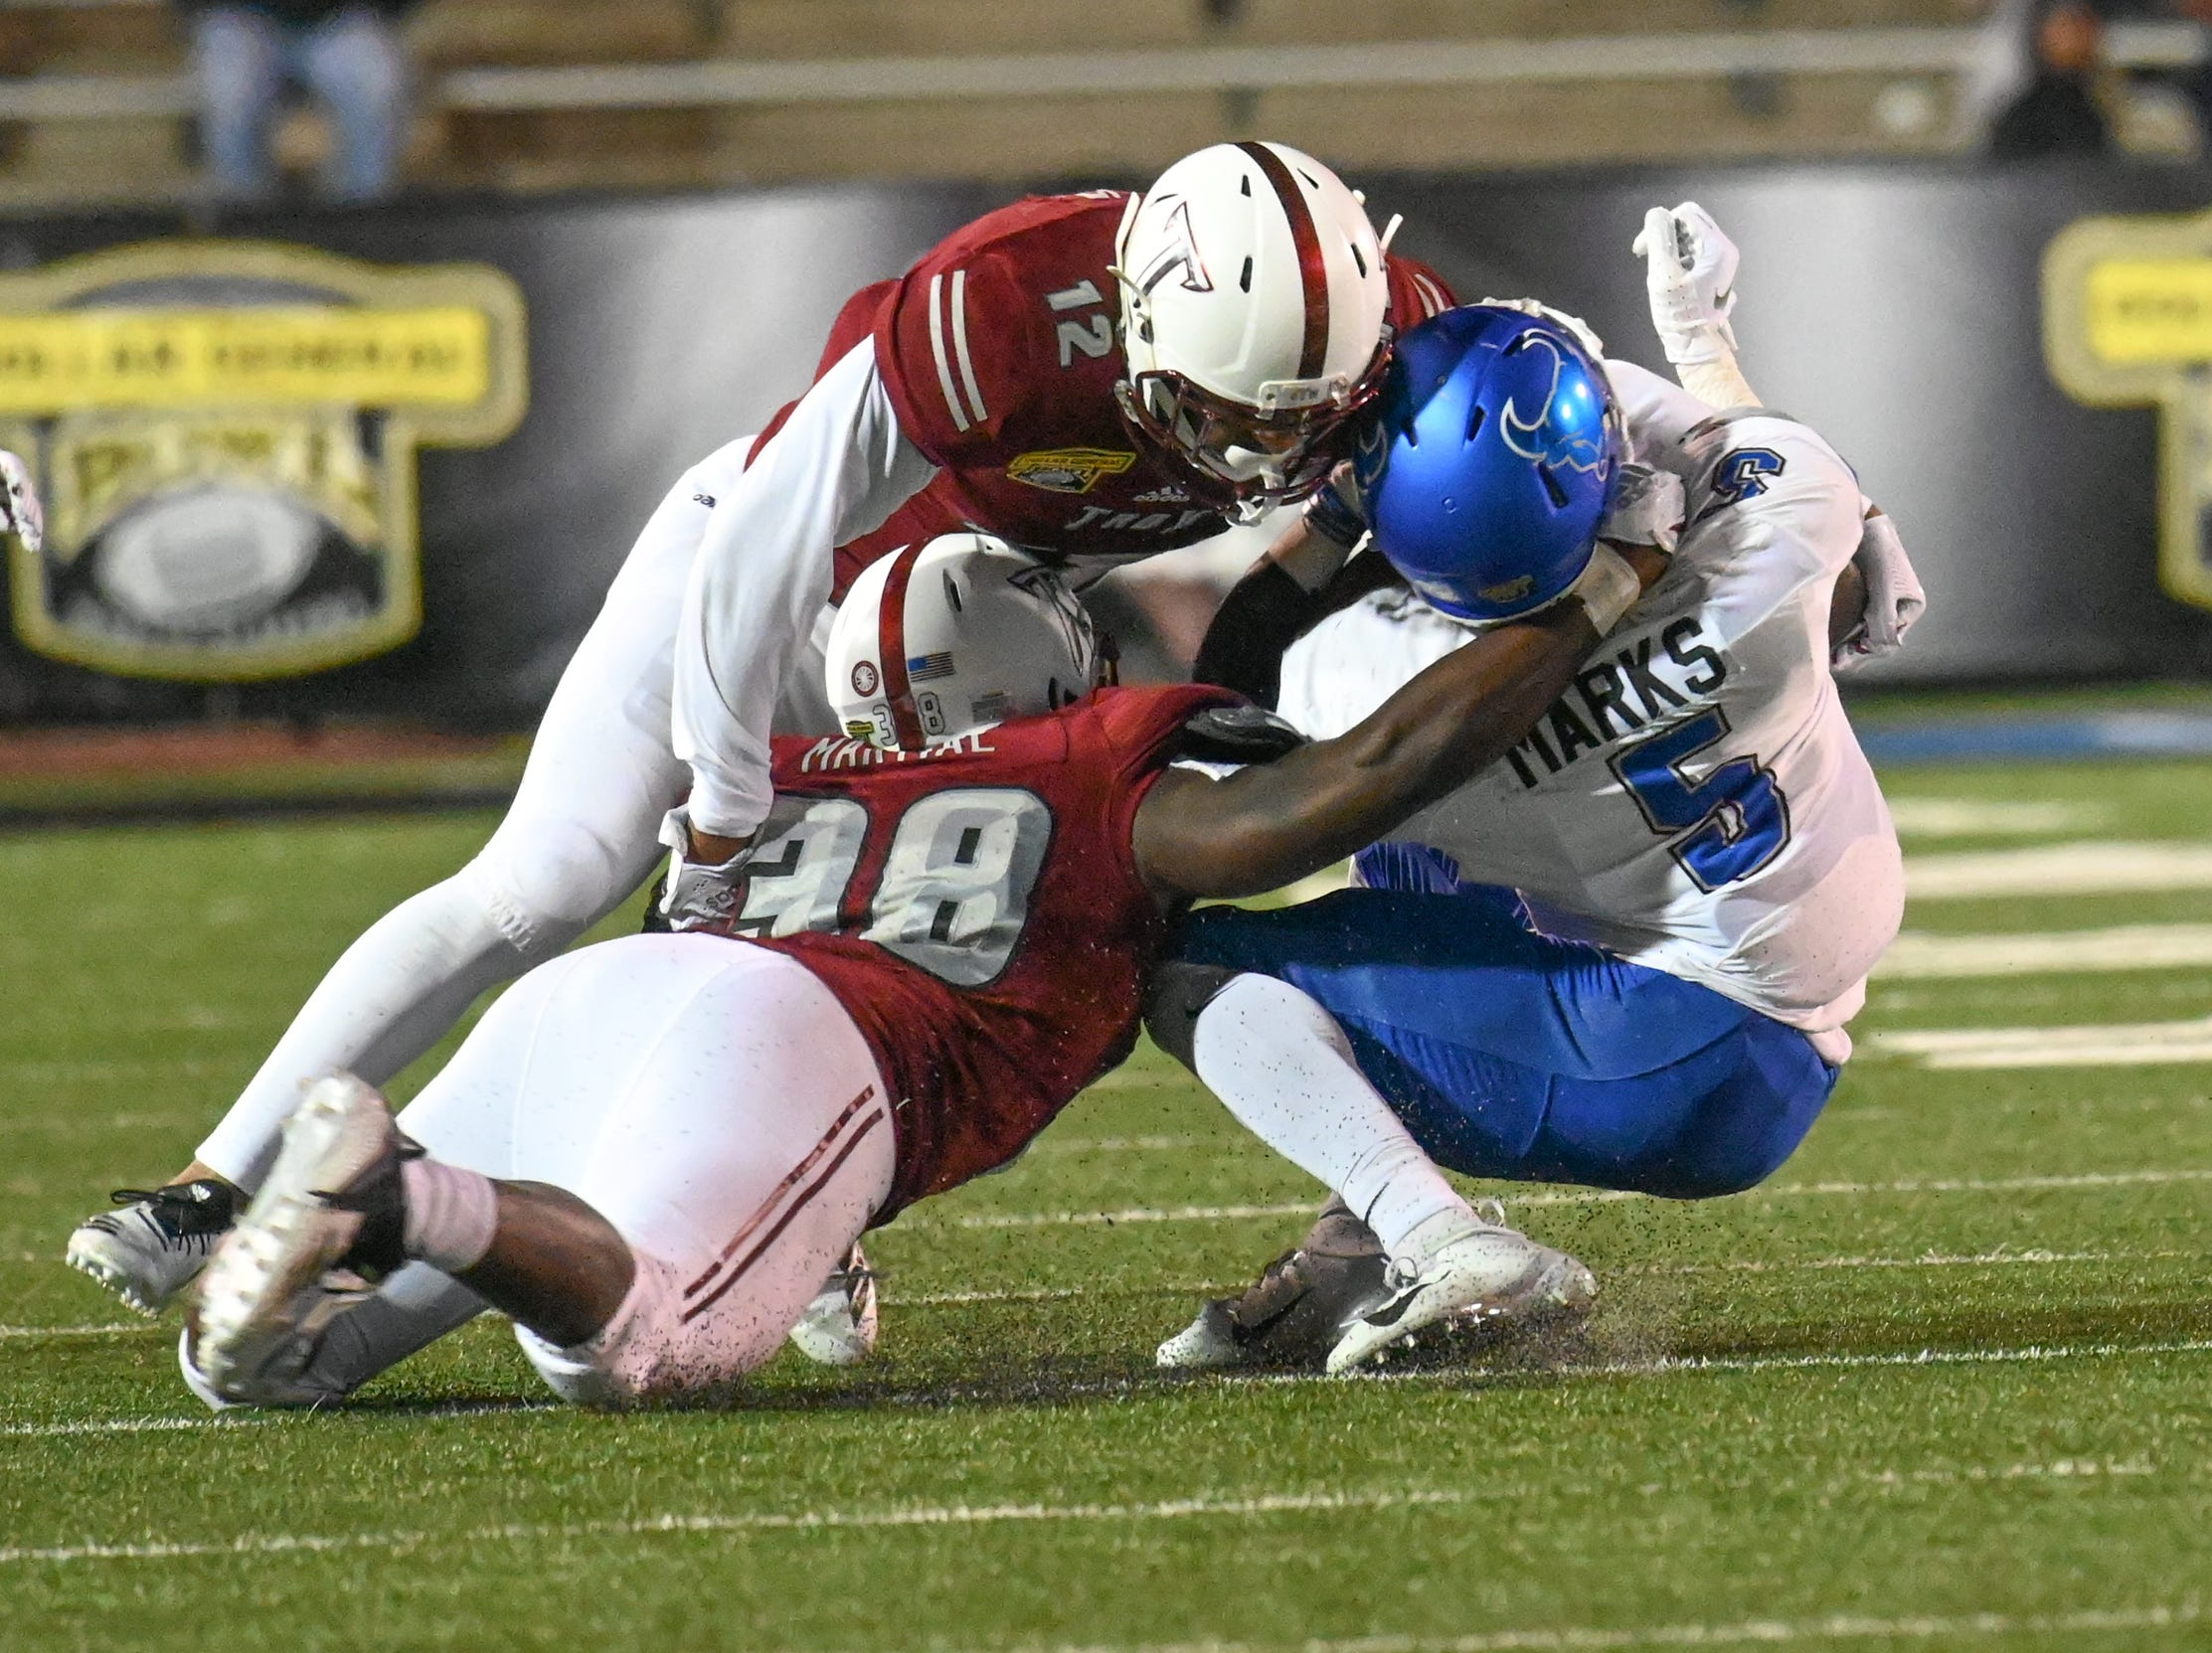 Buffalo Bulls running back Kevin Marks (5) is tackled by Troy Trojans safety Melvin Tyus (12) and Troy Trojans linebacker Carlton Martial (38) during the Dollar General Bowl held at Ladd-Peebles Stadium in Mobile on Saturday, Dec. 22, 2018.